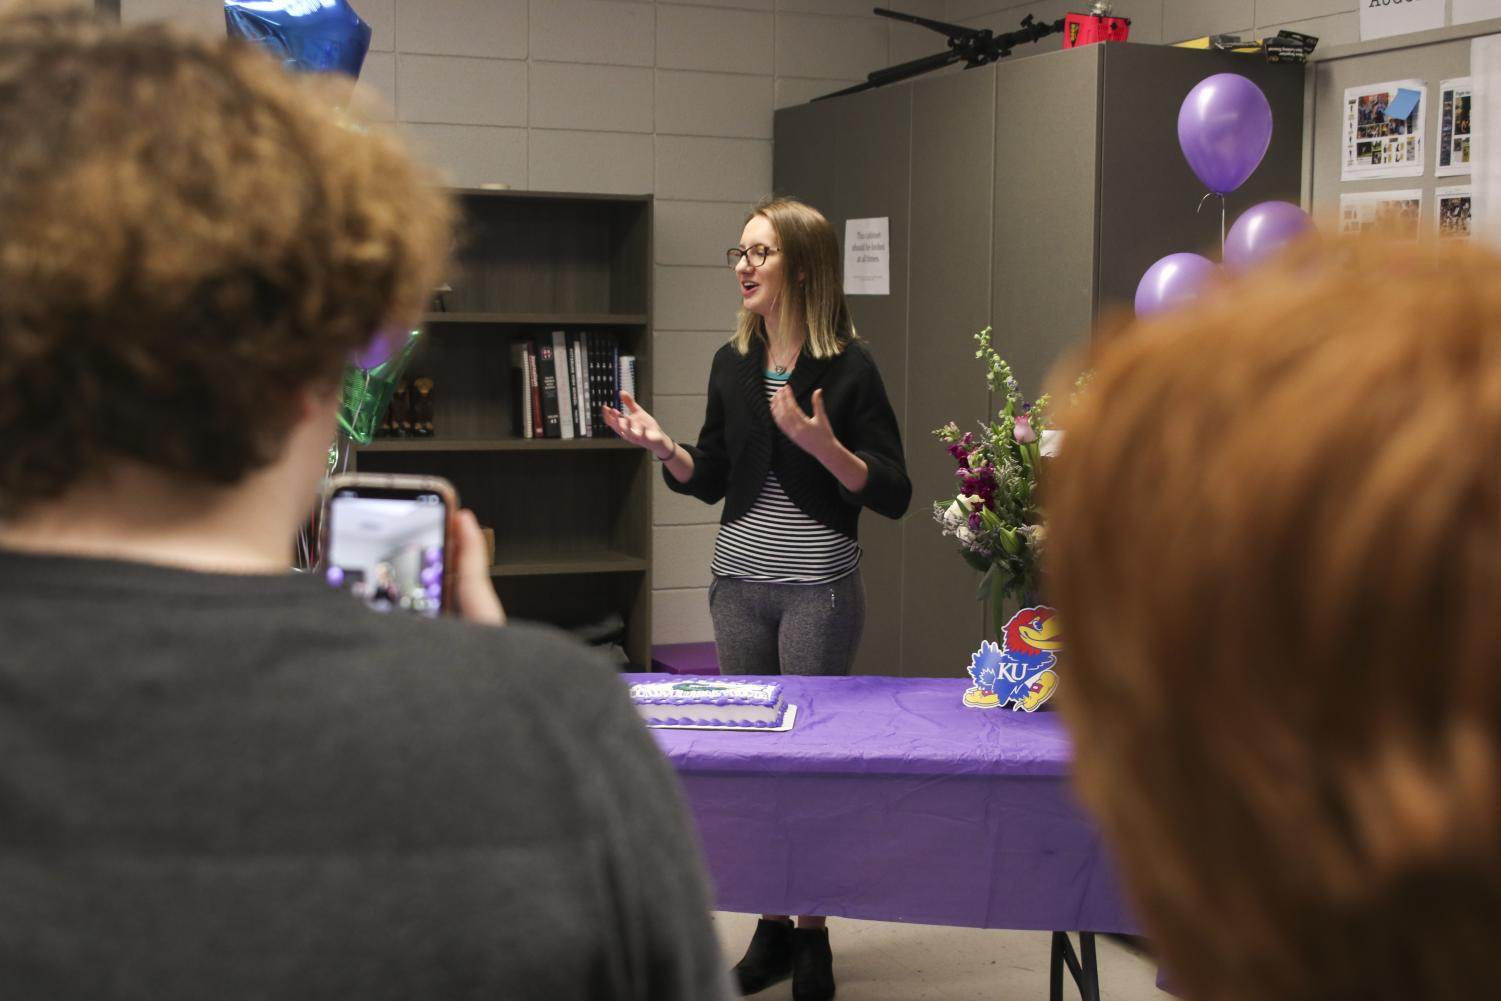 Senior Nicole Konopelko gives remarks in student publications adviser Emily Smith's classroom at a a ceremony on the afternoon of Feb. 20 in which Konopelko was honored for winning Kansas Student Journalist of the Year.